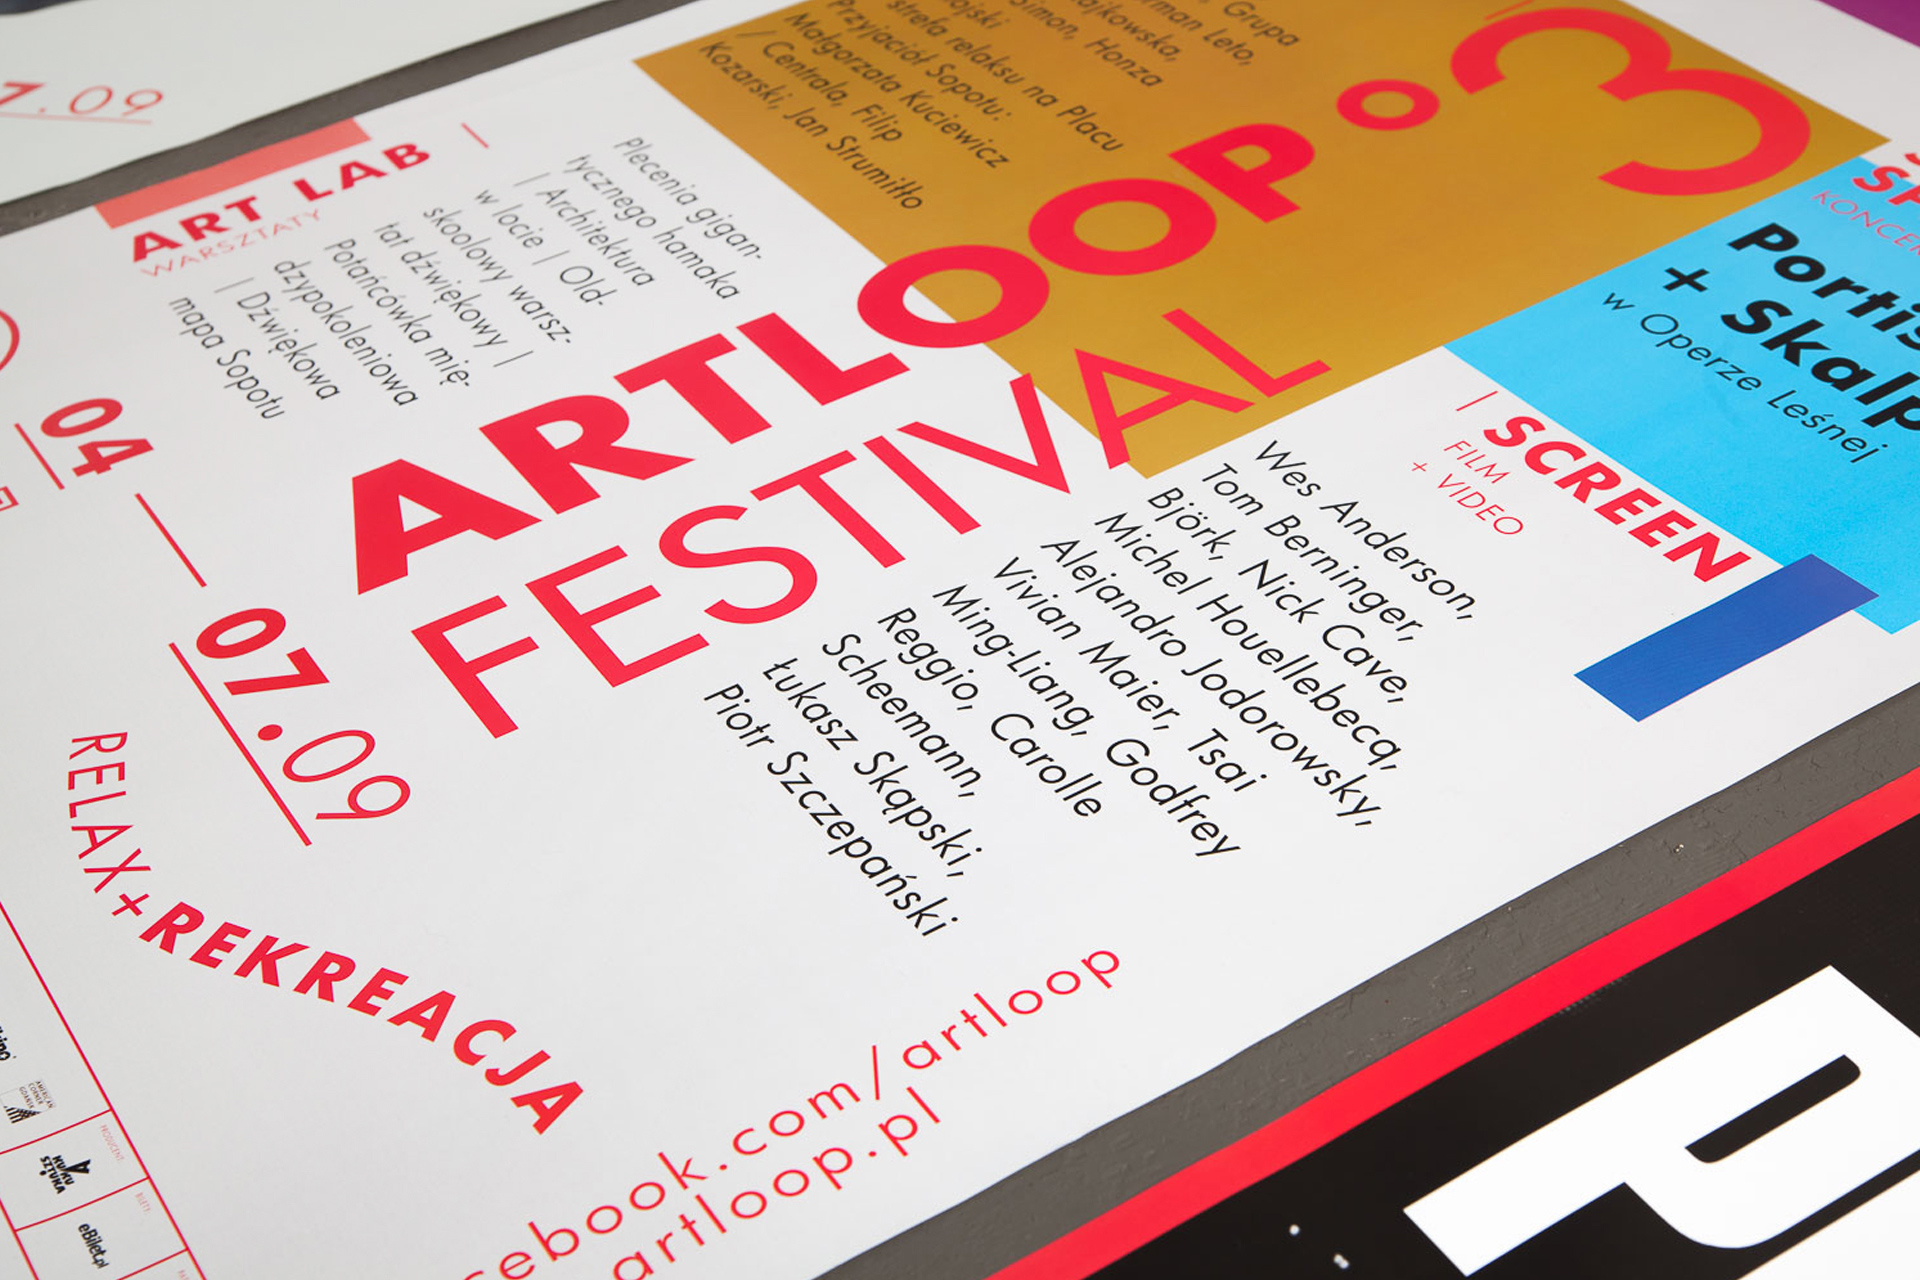 Poster design - Artloop Festival 2014 by Uniforma Studio